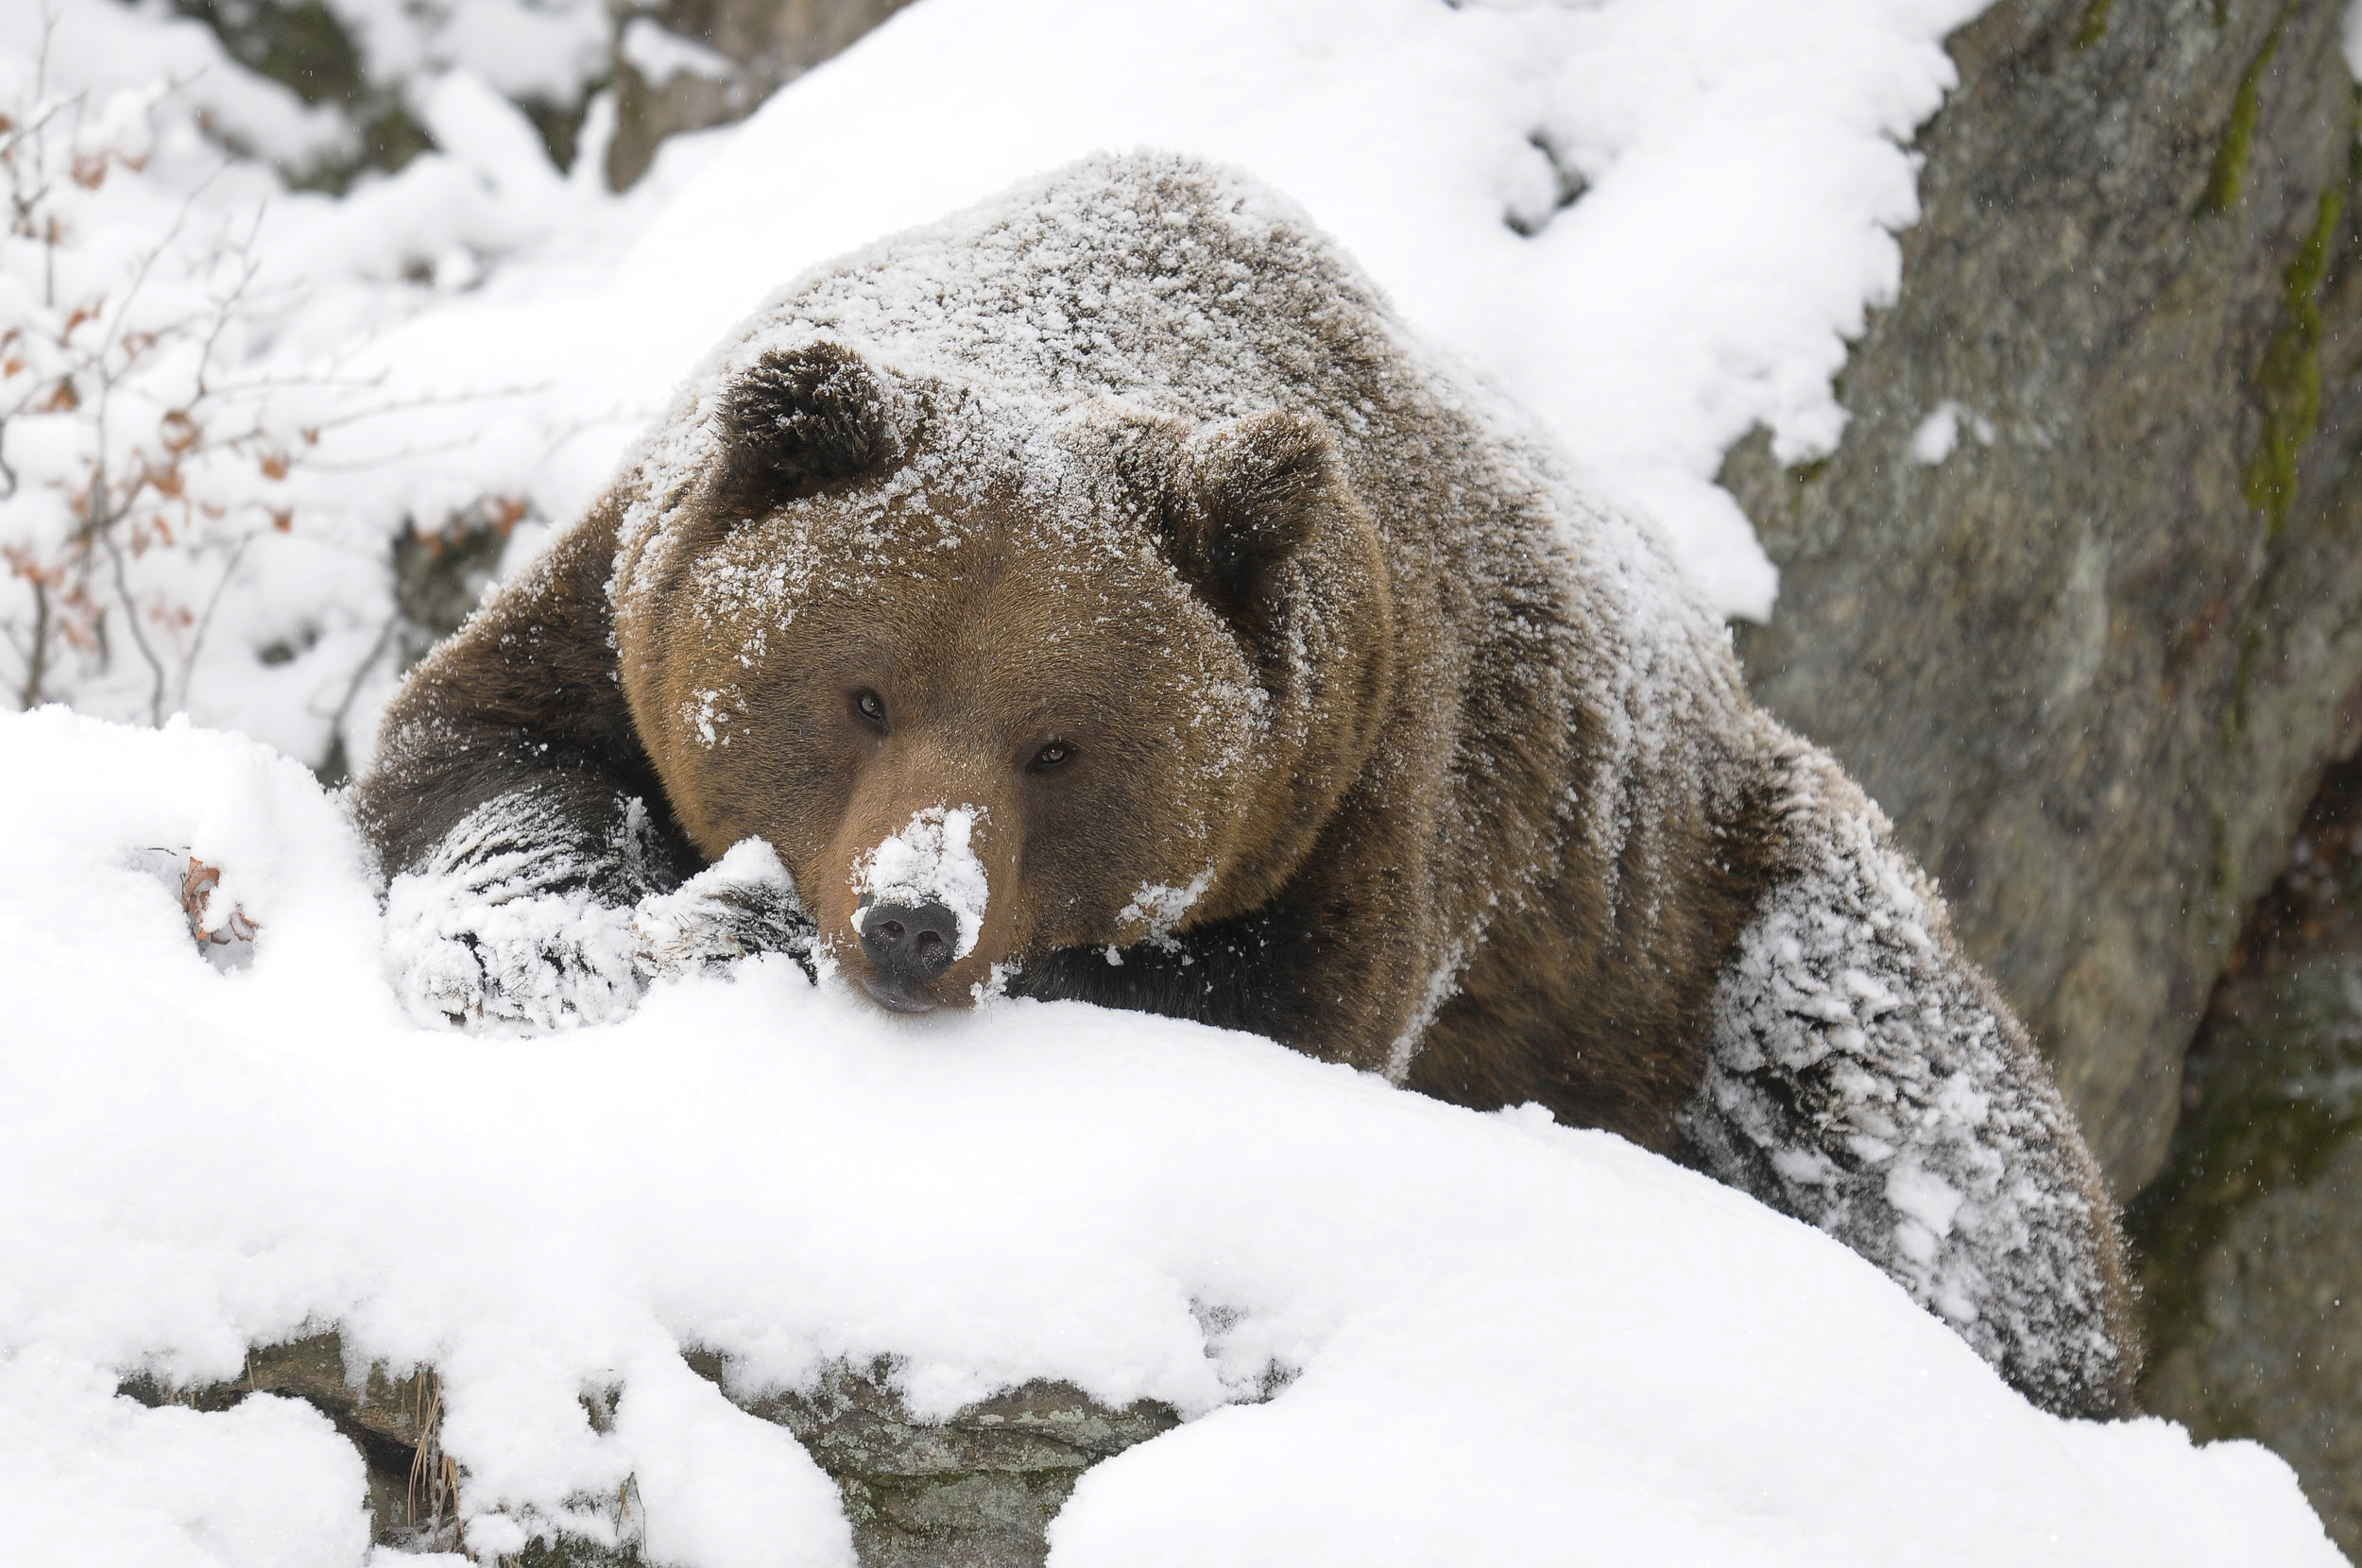 Take it from this hibernation expert: sometimes it's best to just stay in!